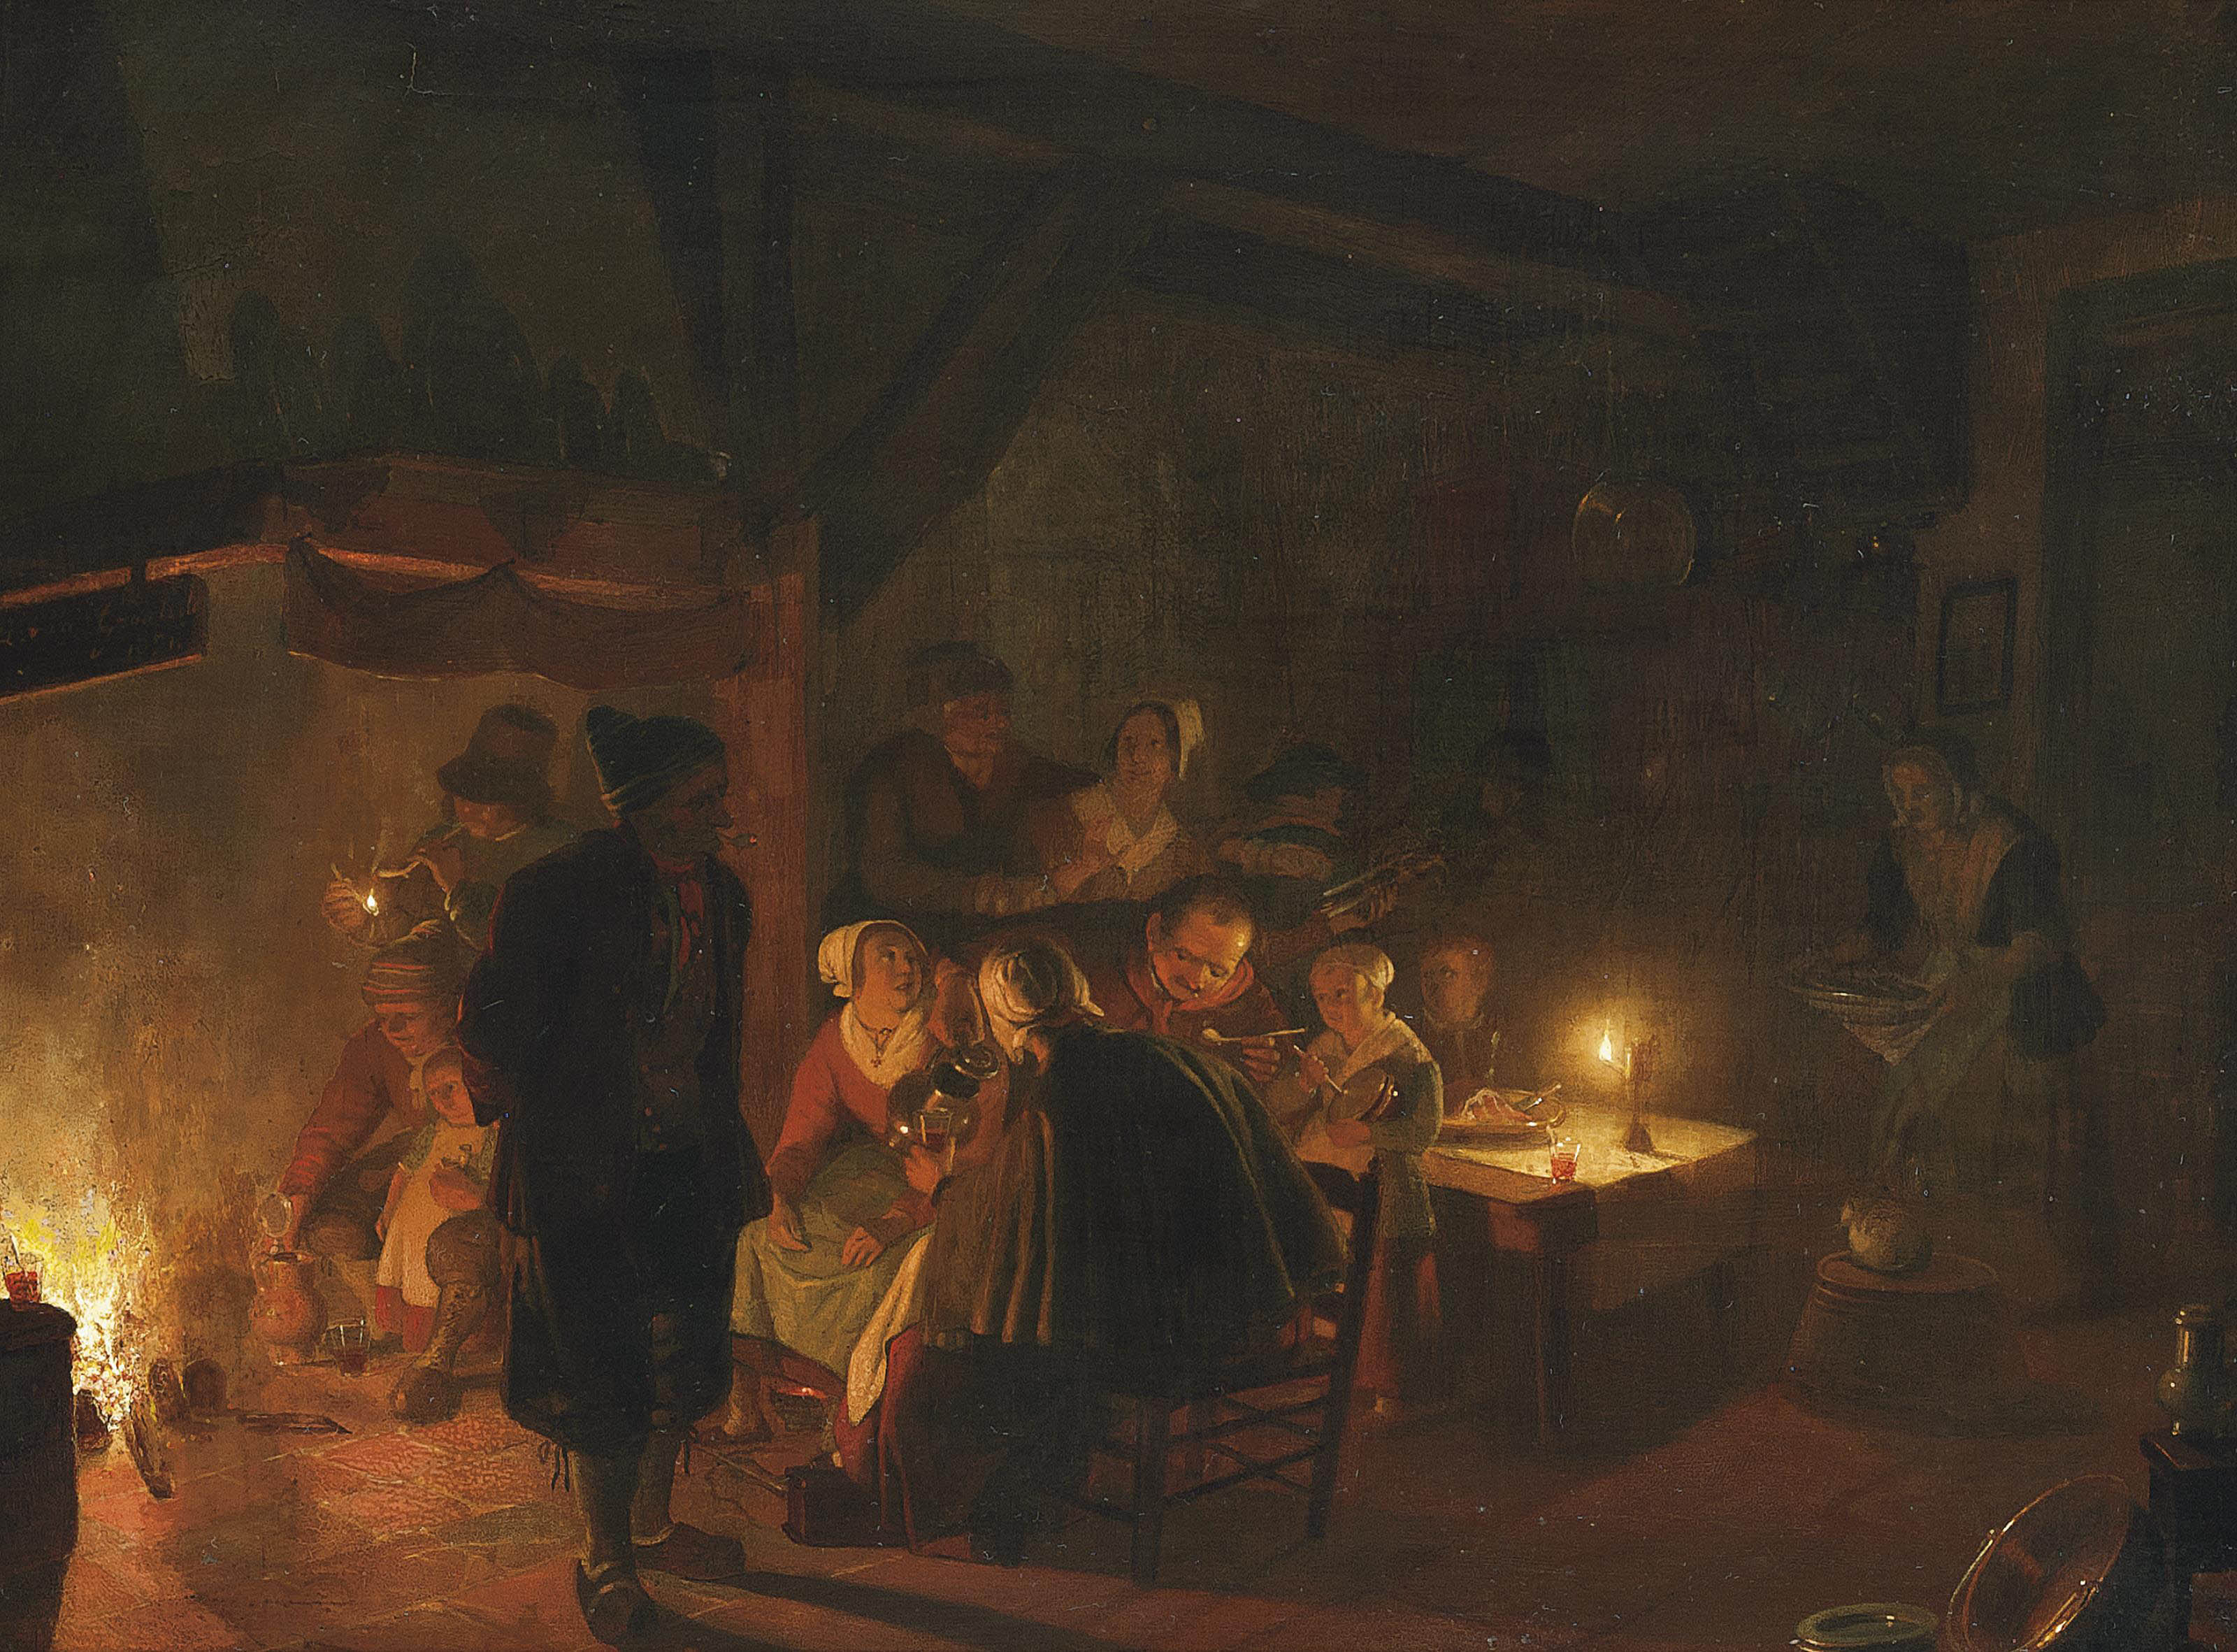 A family eating by candlelight in an interior